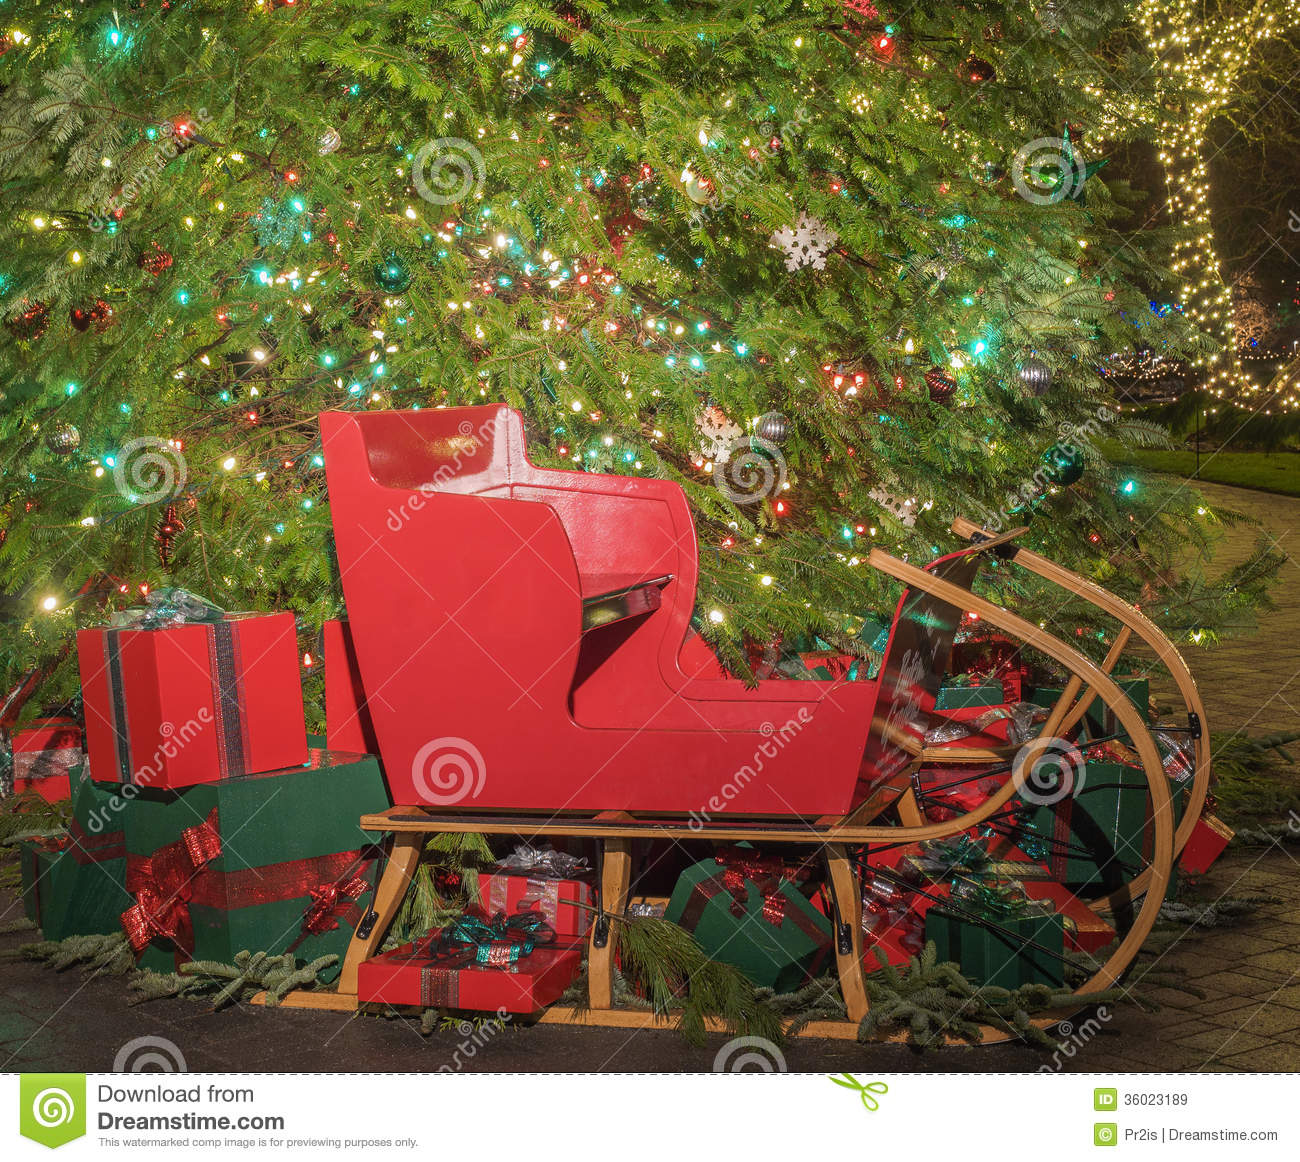 Christmas Gifts And Sled Under The Tree Royalty Free Stock